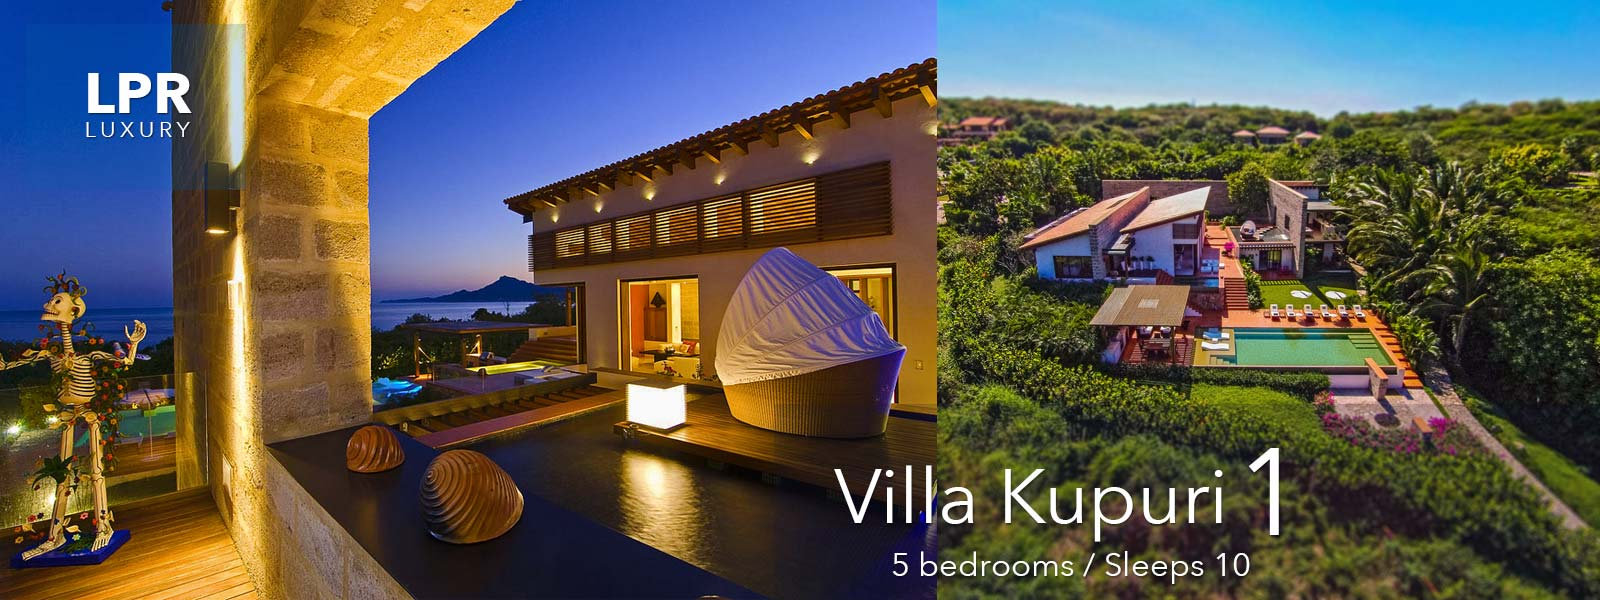 Villa Kupuri 1 - Punta Mita Resort - Mexico Luxury Vacation Rentals and Resort Real Estate